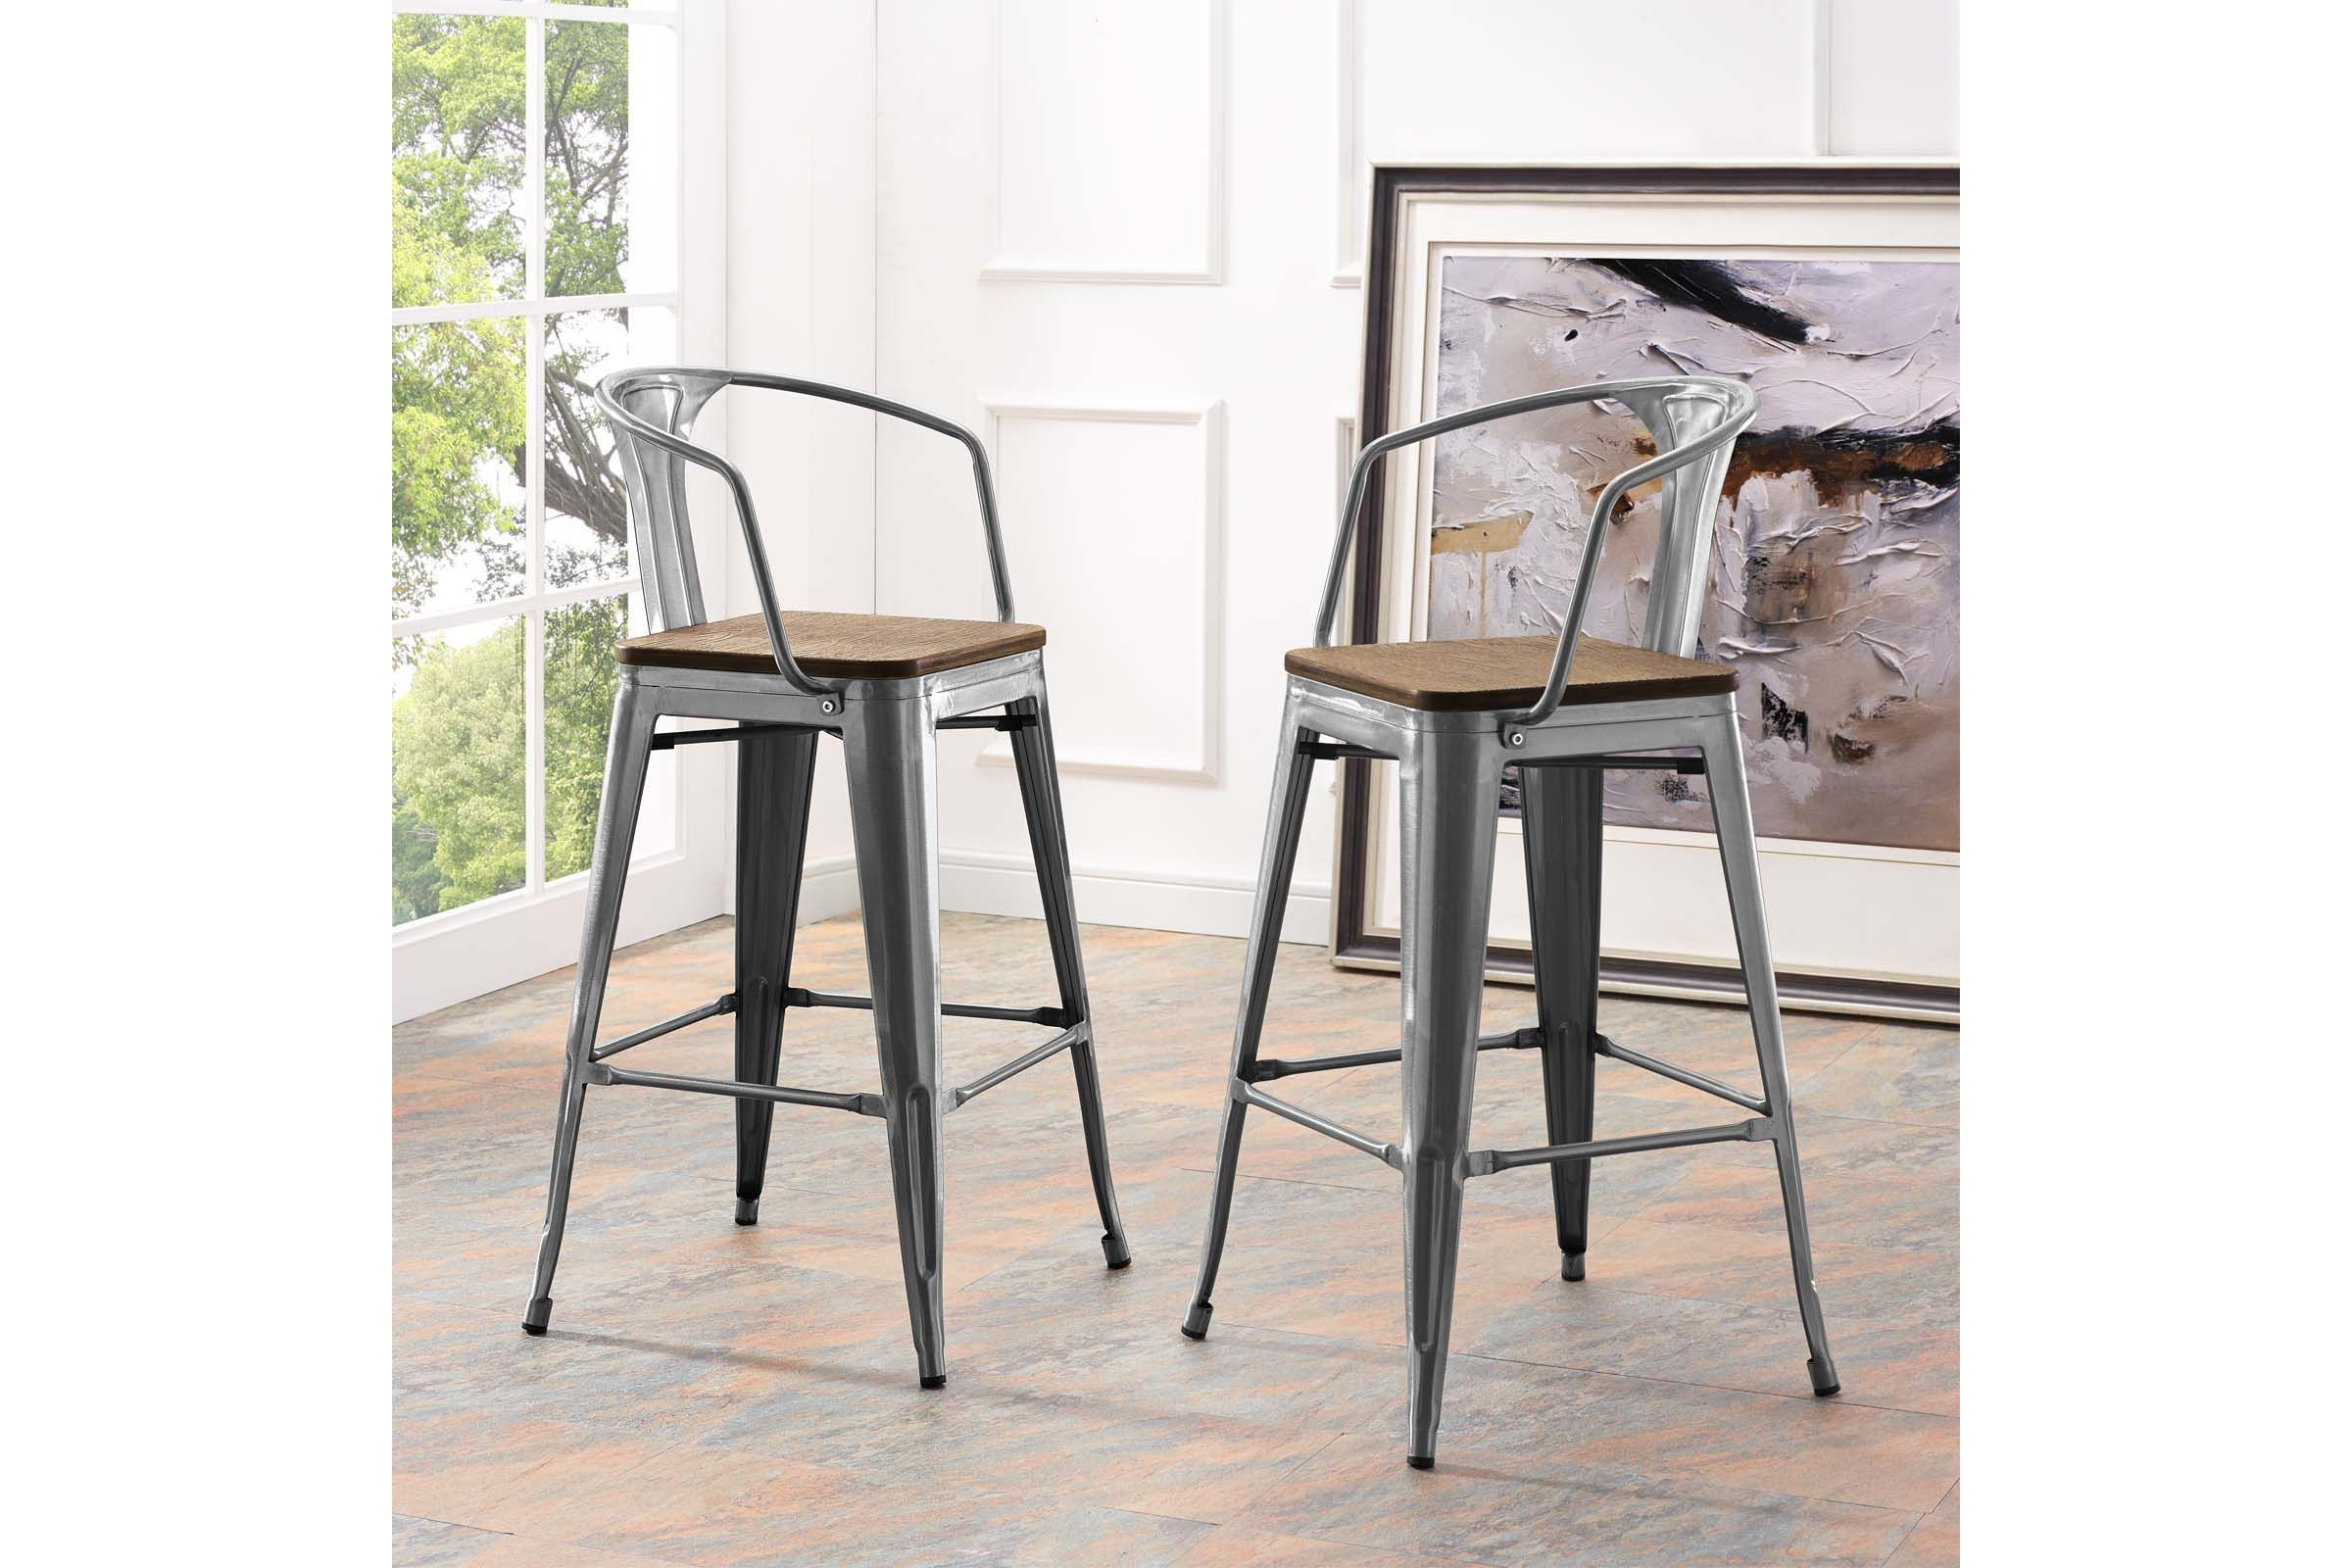 Promenade Low Back Bar Stool In Gunmetal By Modway In 2020 Bar